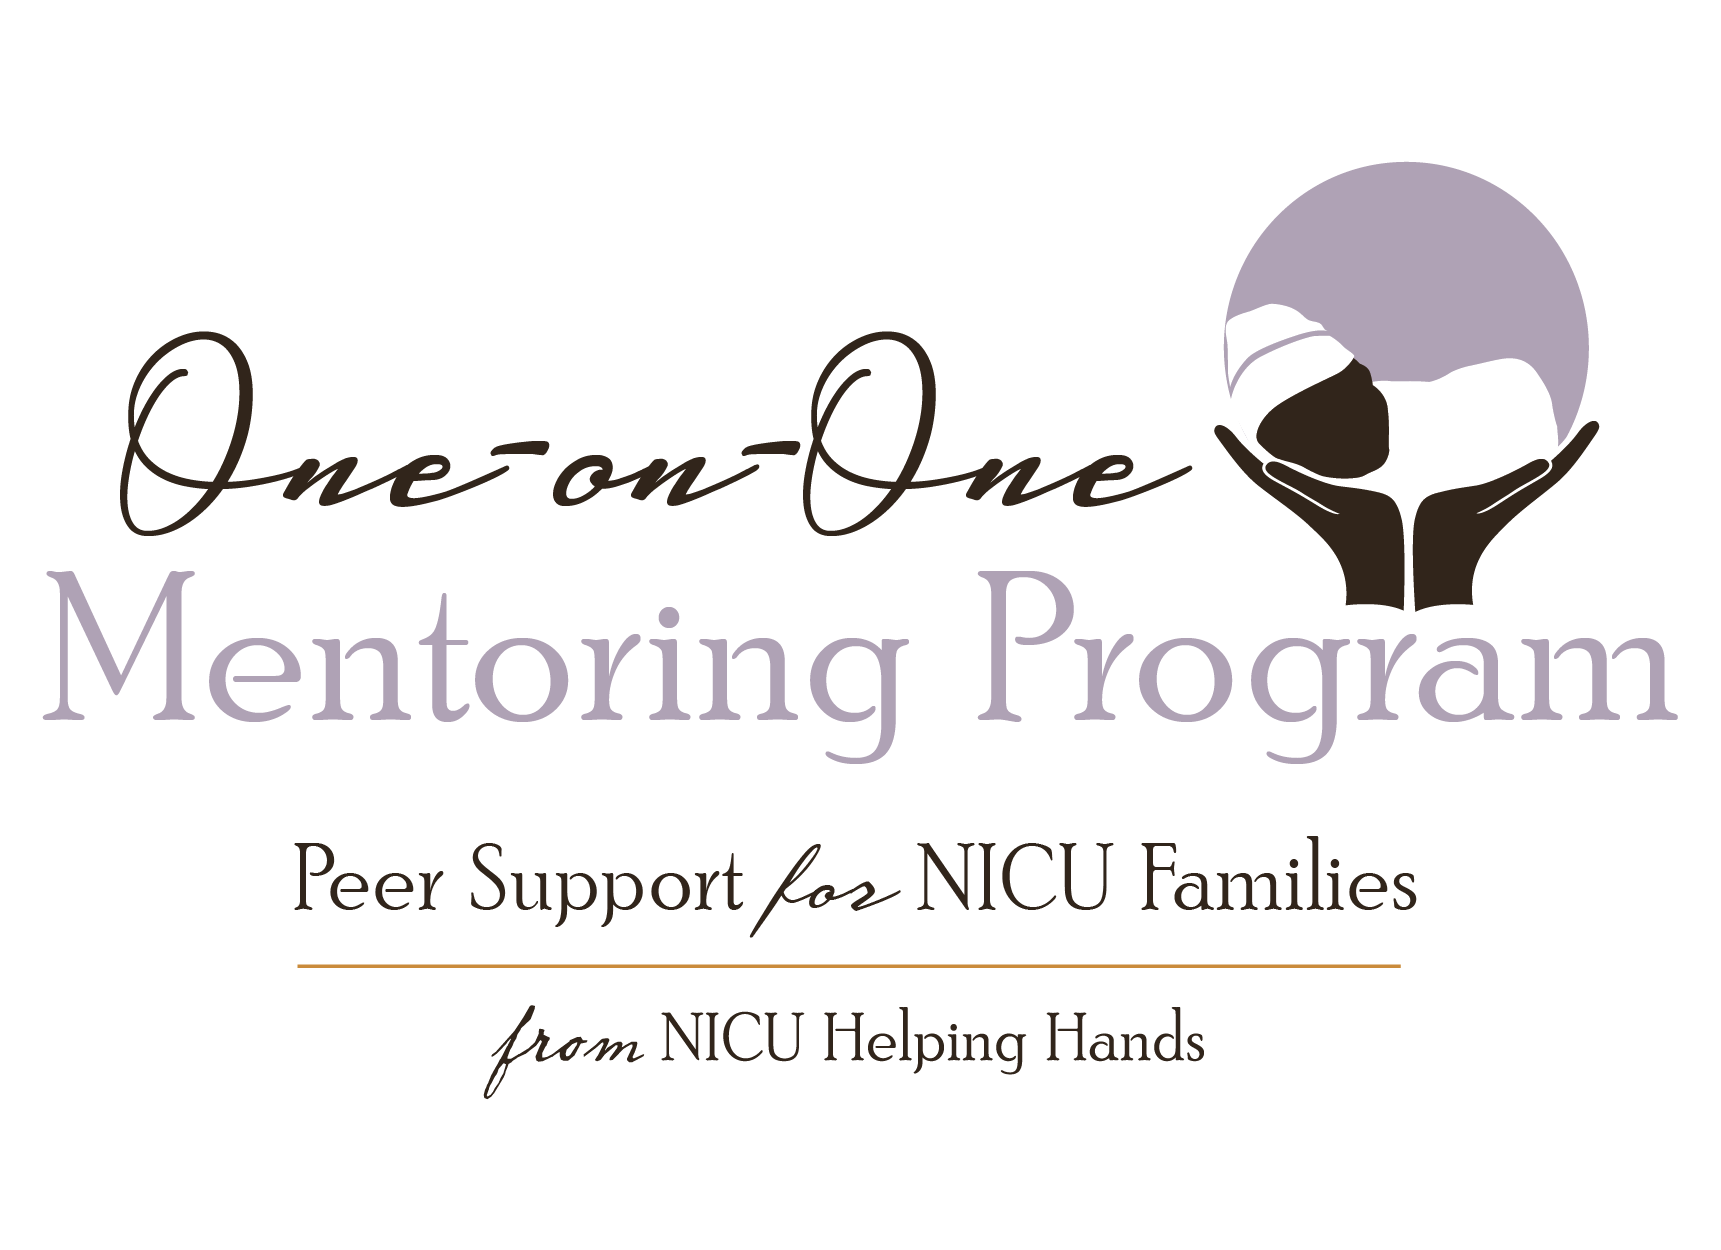 One on One Mentoring Program